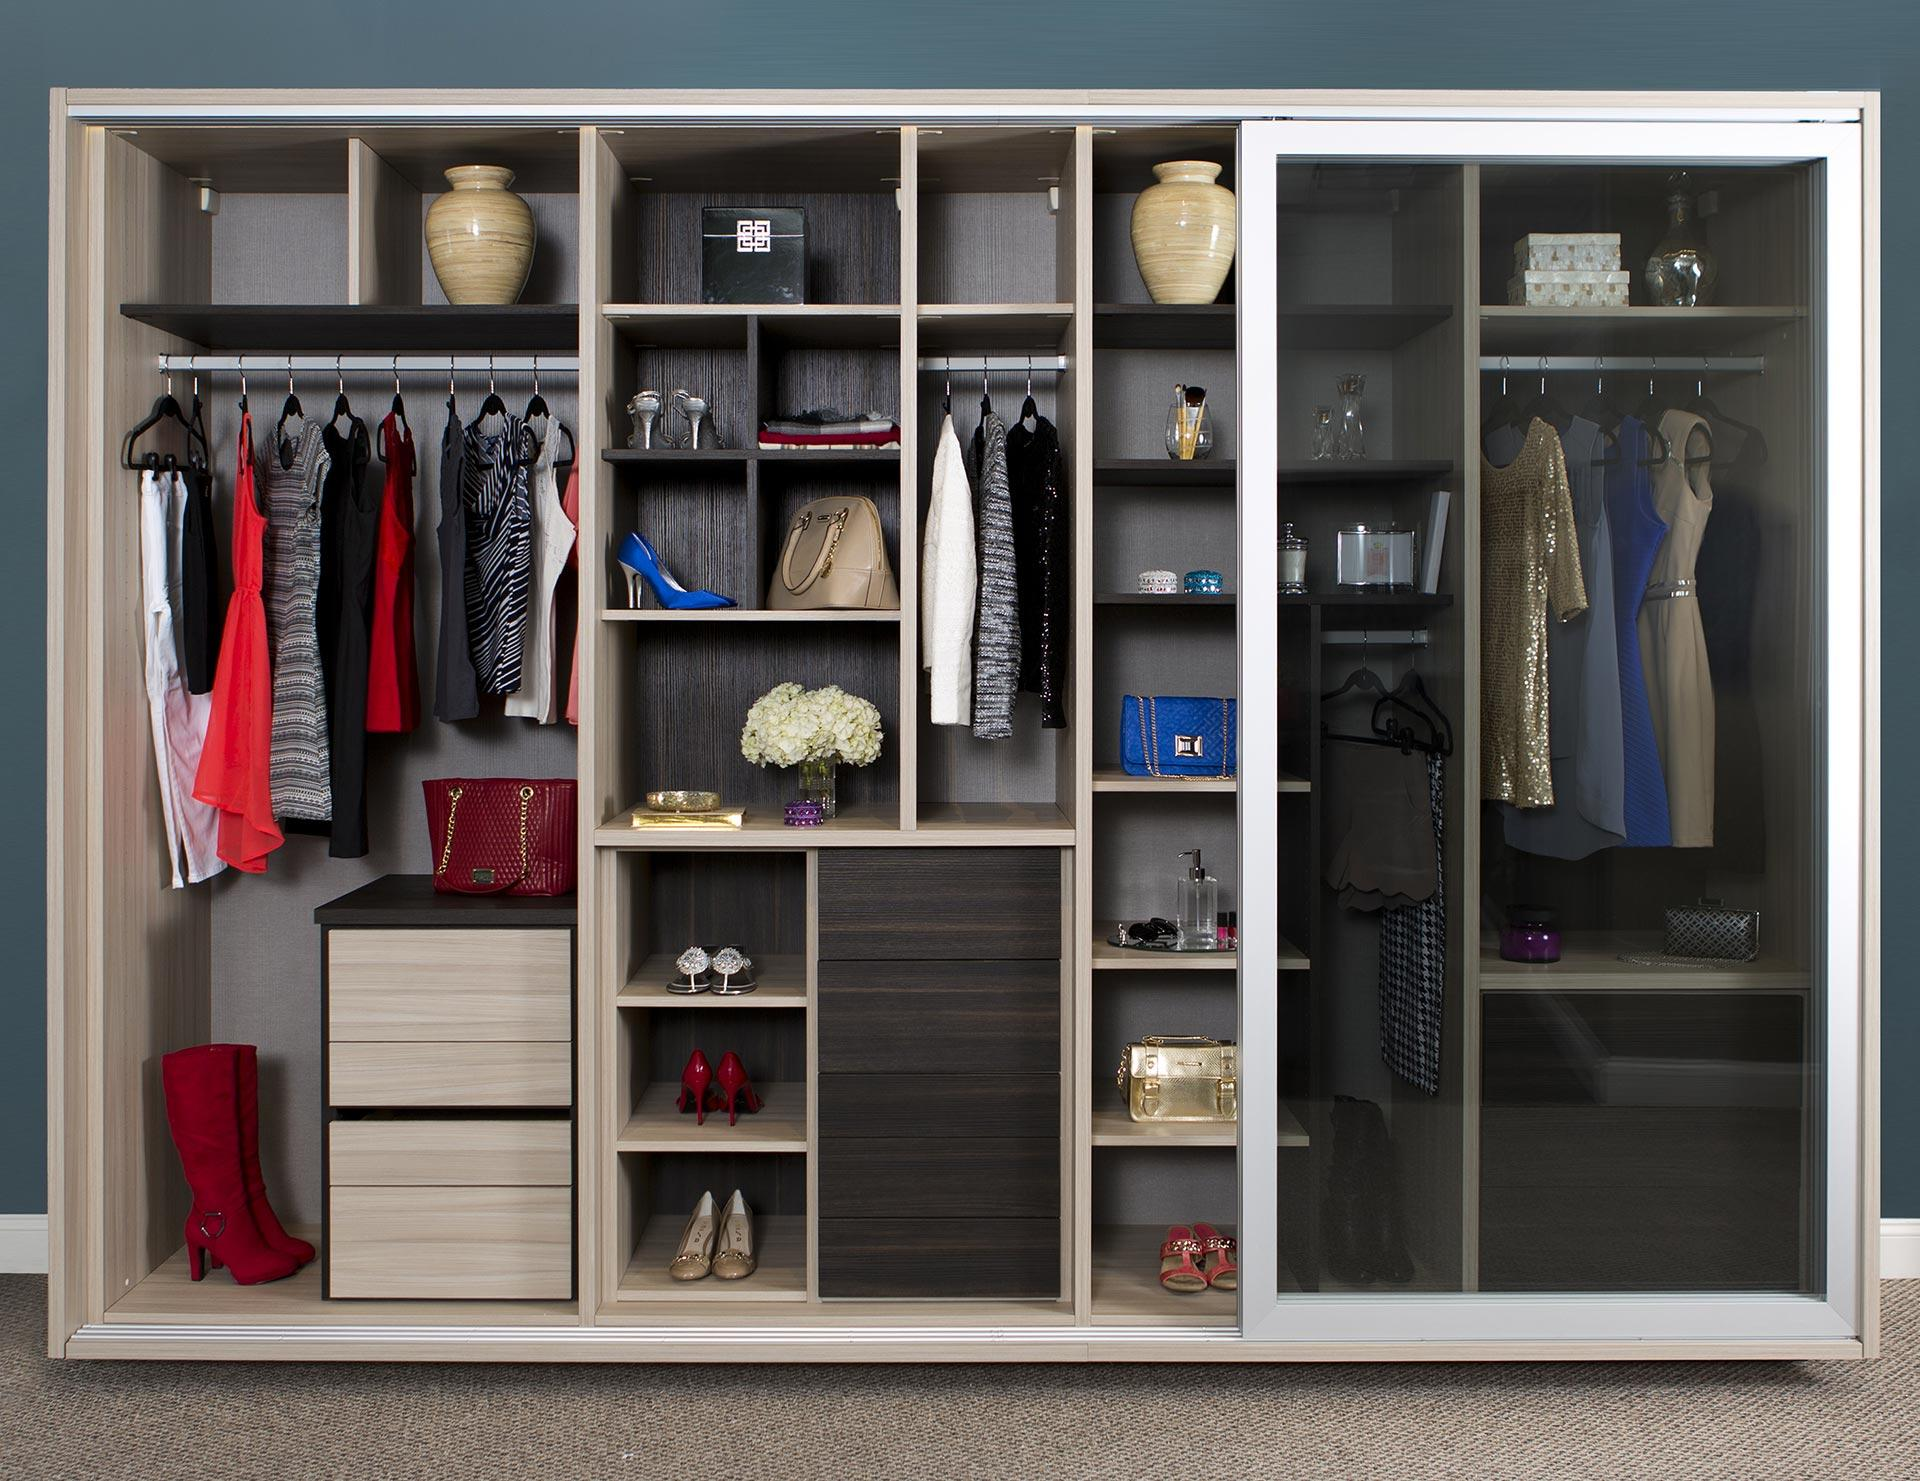 Ideas On Hanging Pictures In Hallway Wardrobe Closets Custom Wardrobe Closet Systems For Your